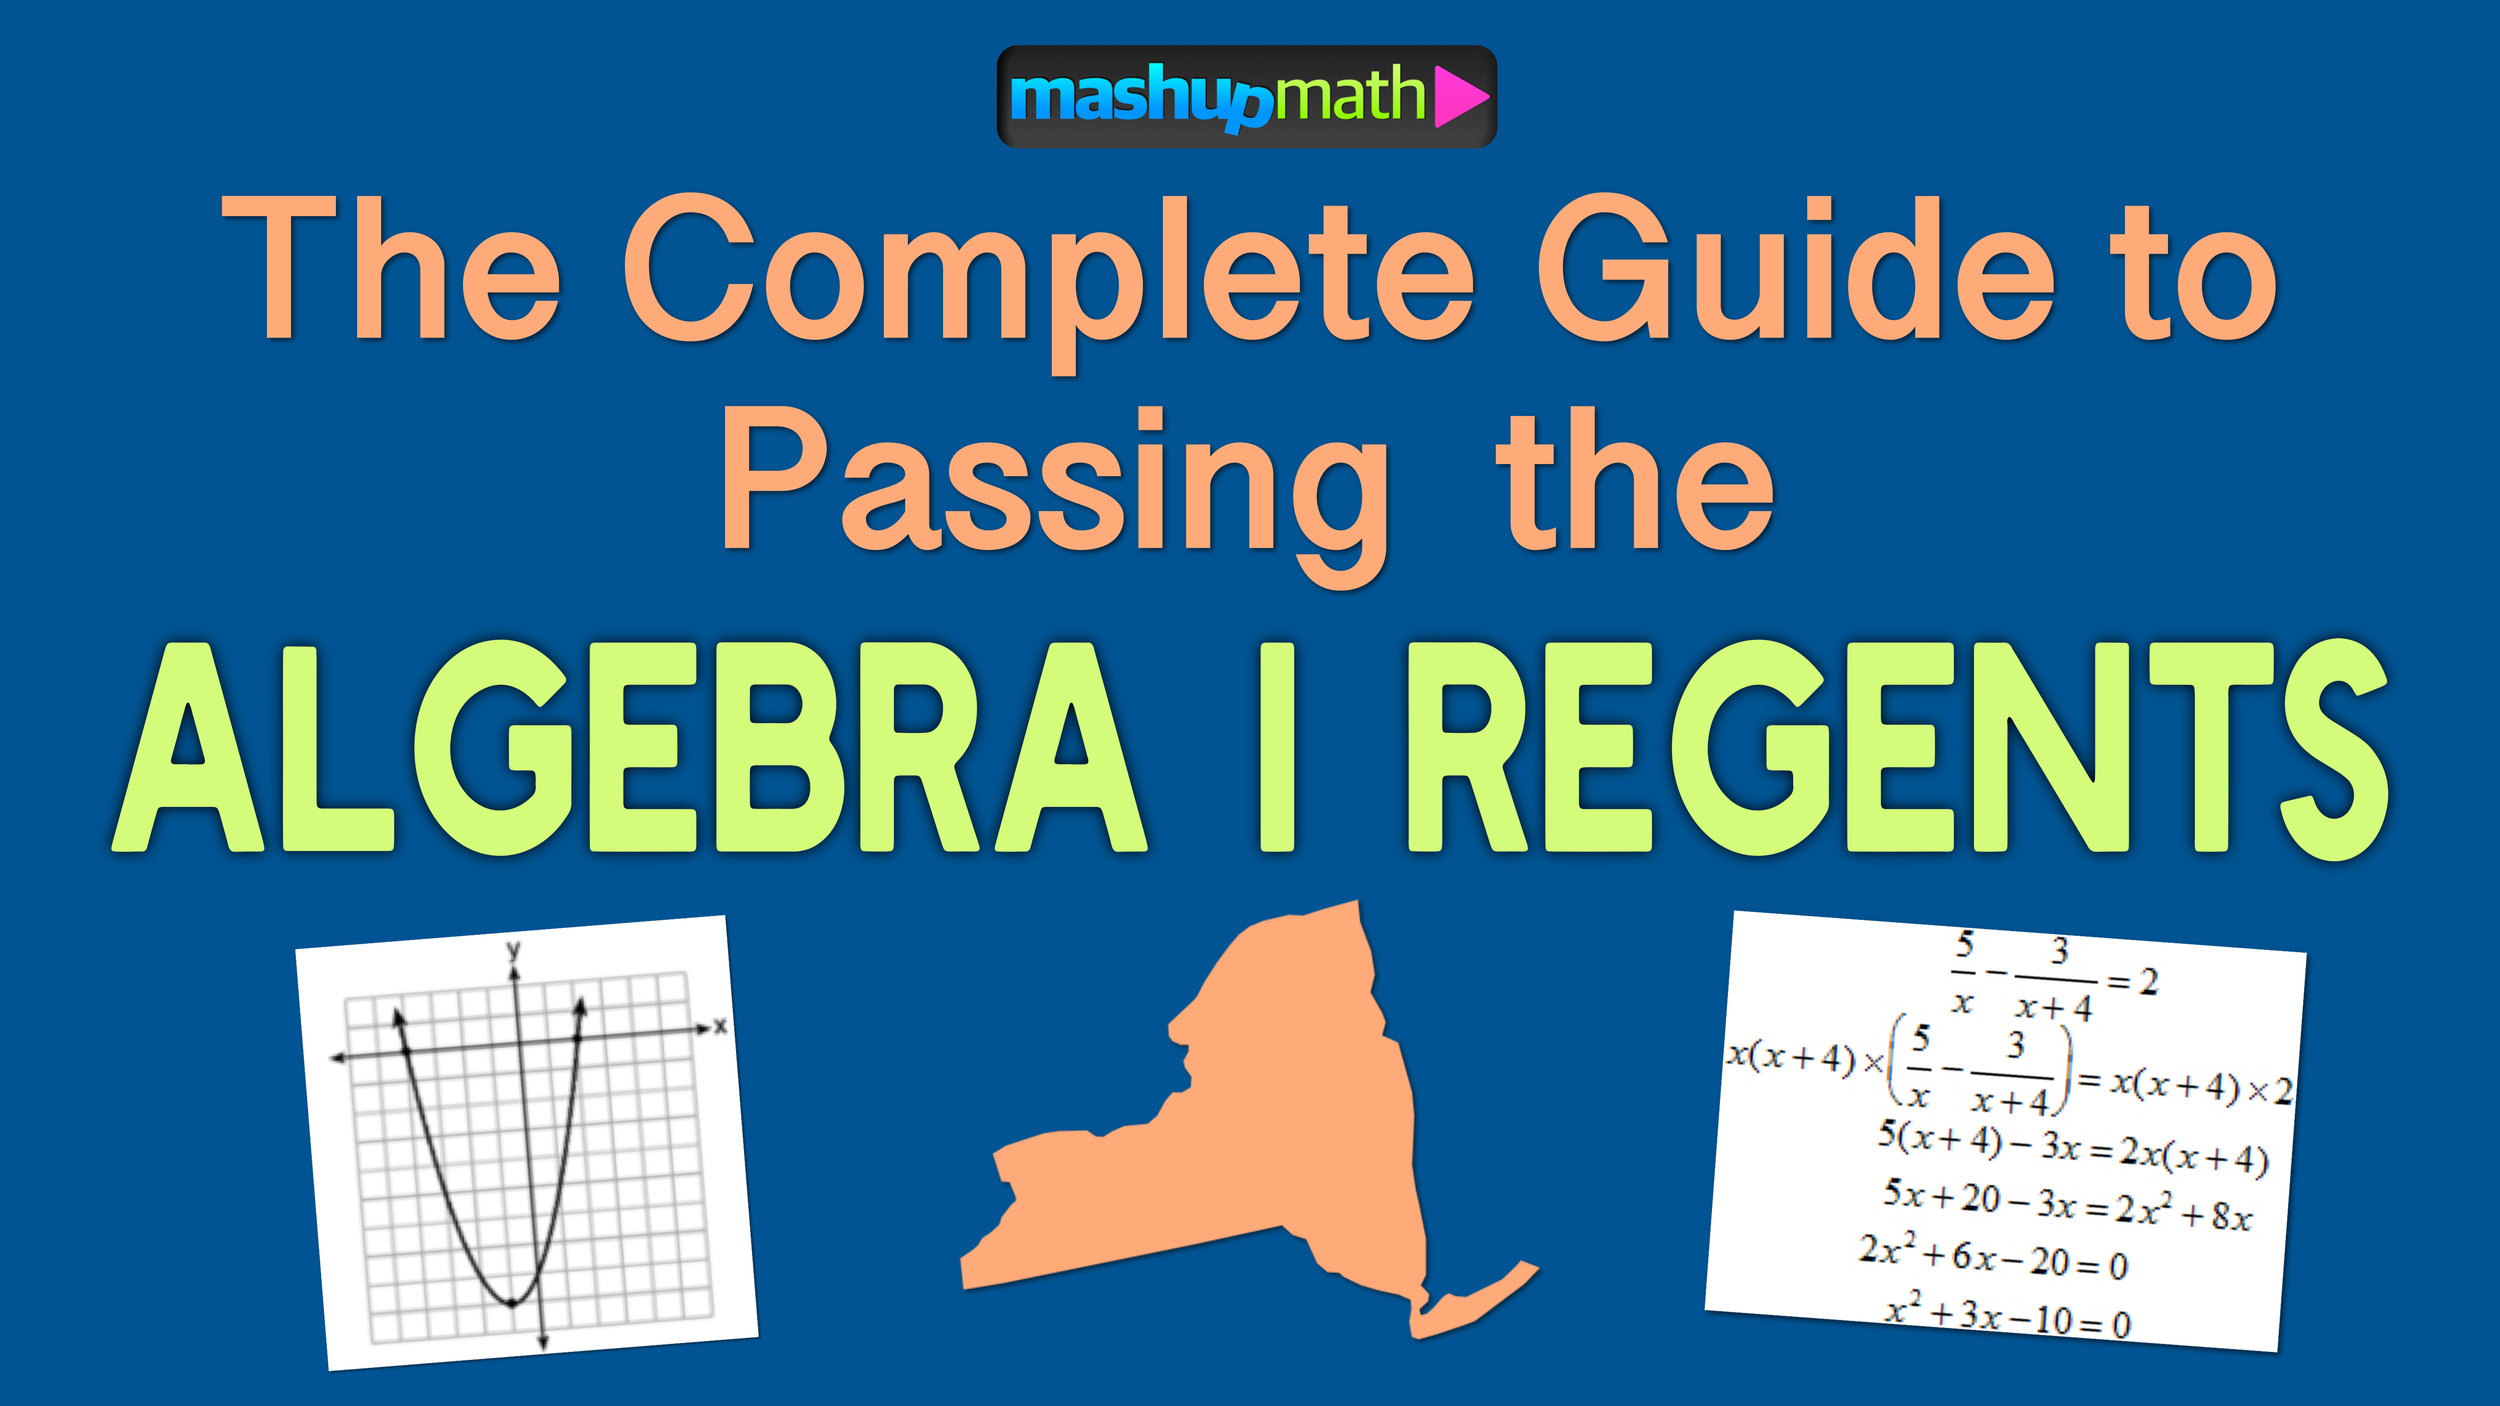 The Ultimate Guide To Passing The Algebra 1 Regents Exam Mashup Math